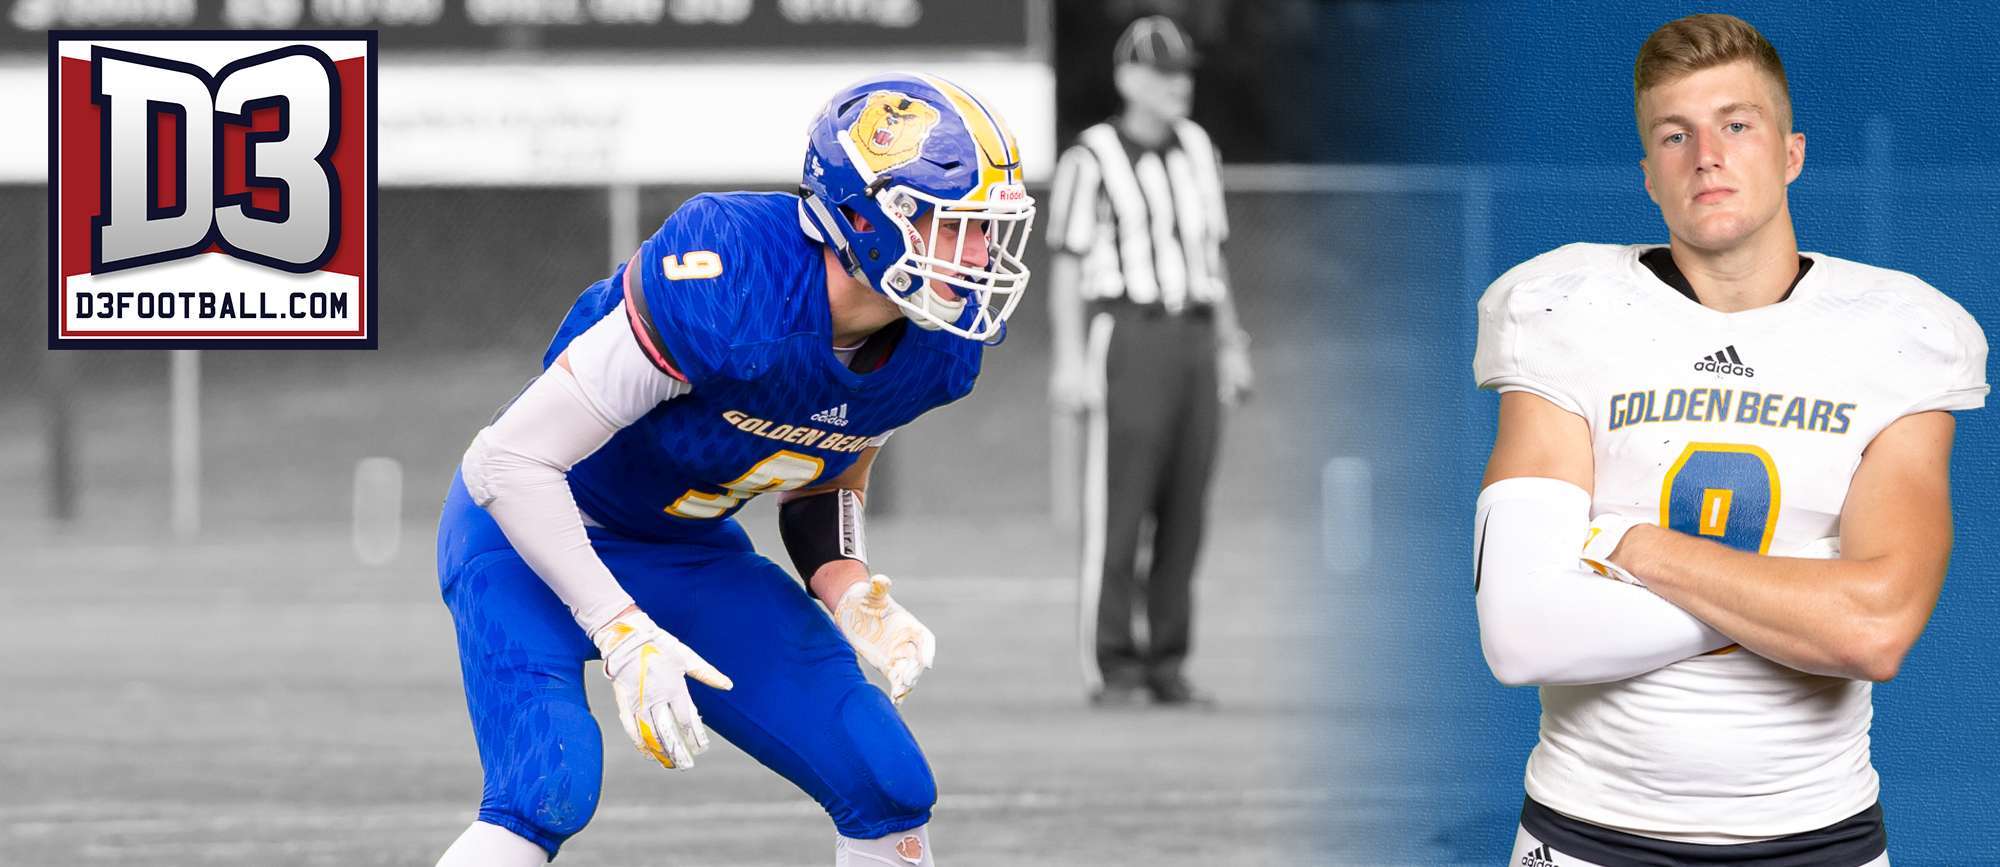 Kurtis Jolicoeur Named to D3football.com All-East Region Second Team